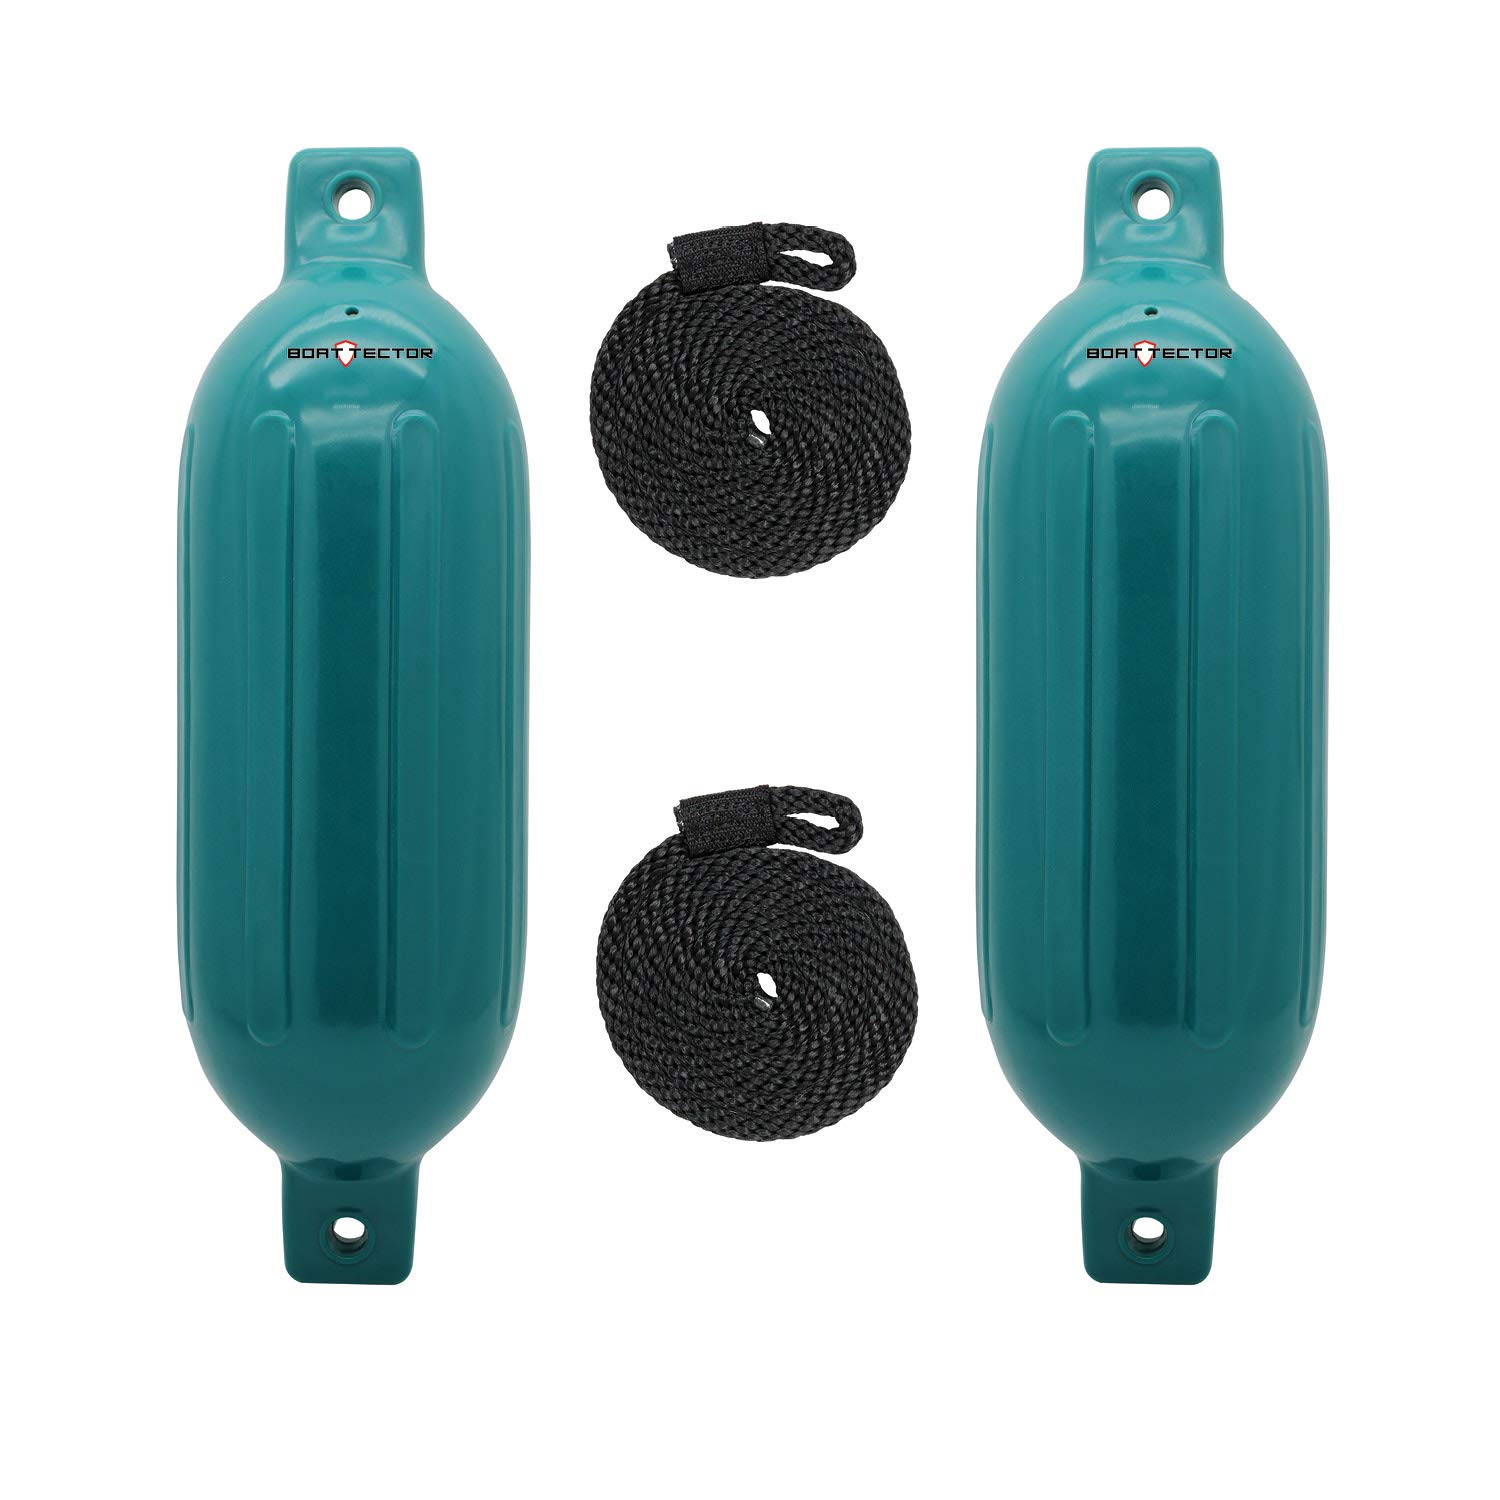 Extreme Max Standard 3006.7608 BoatTector Inflatable Fender Value 2-Pack-8.5'' x 27'', Teal